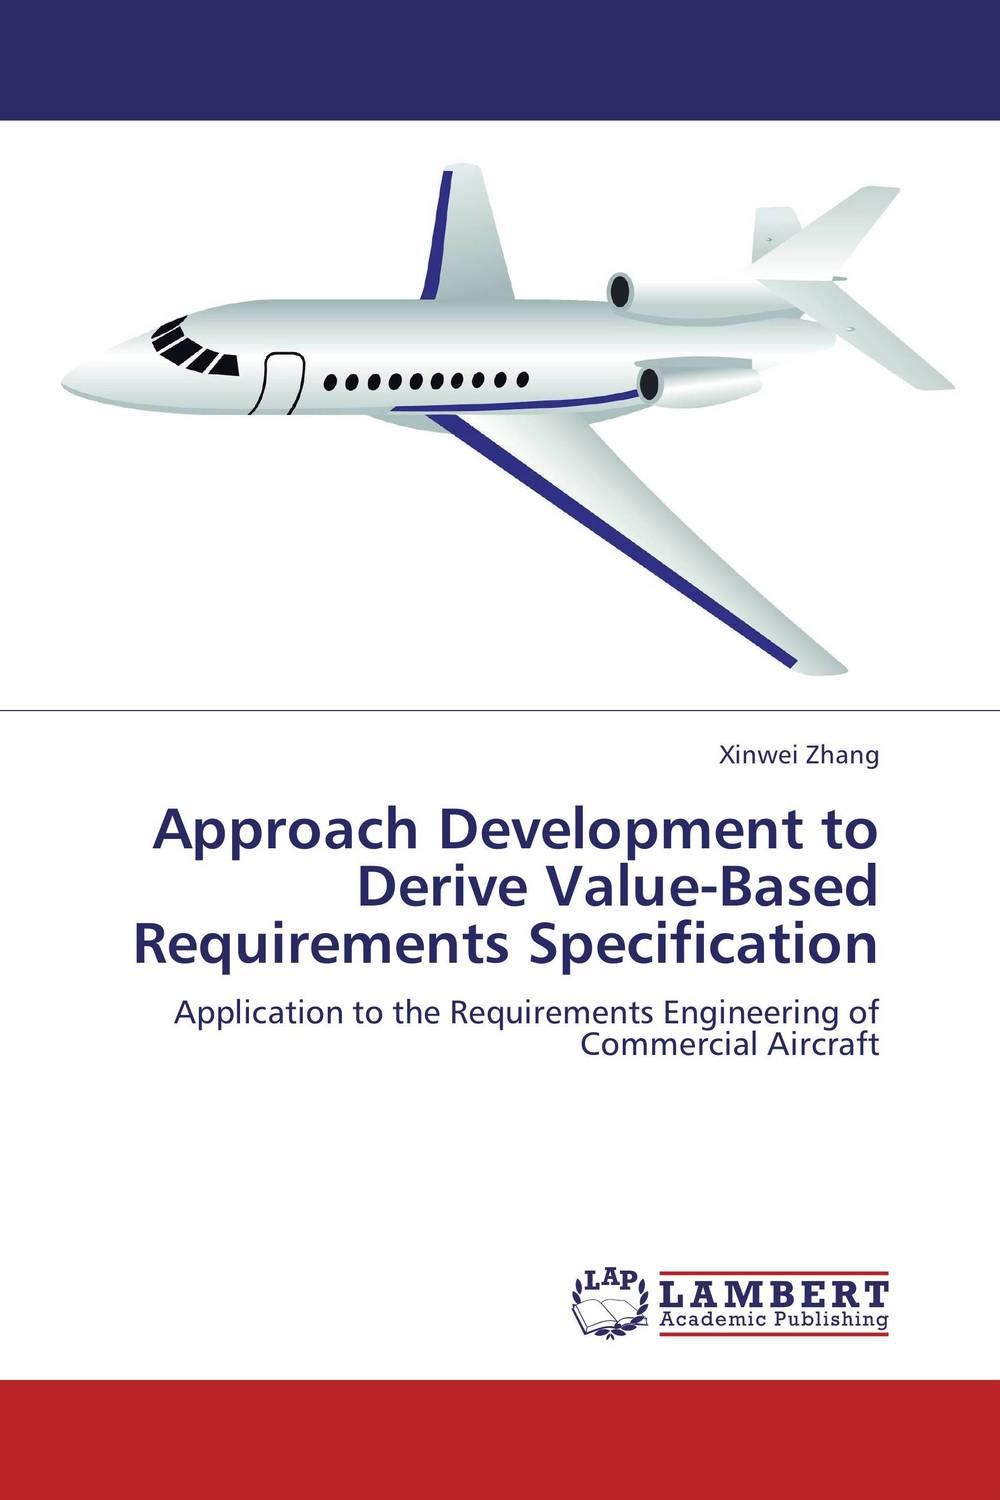 Approach Development to Derive Value-Based Requirements Specification adding customer value through effective distribution strategy